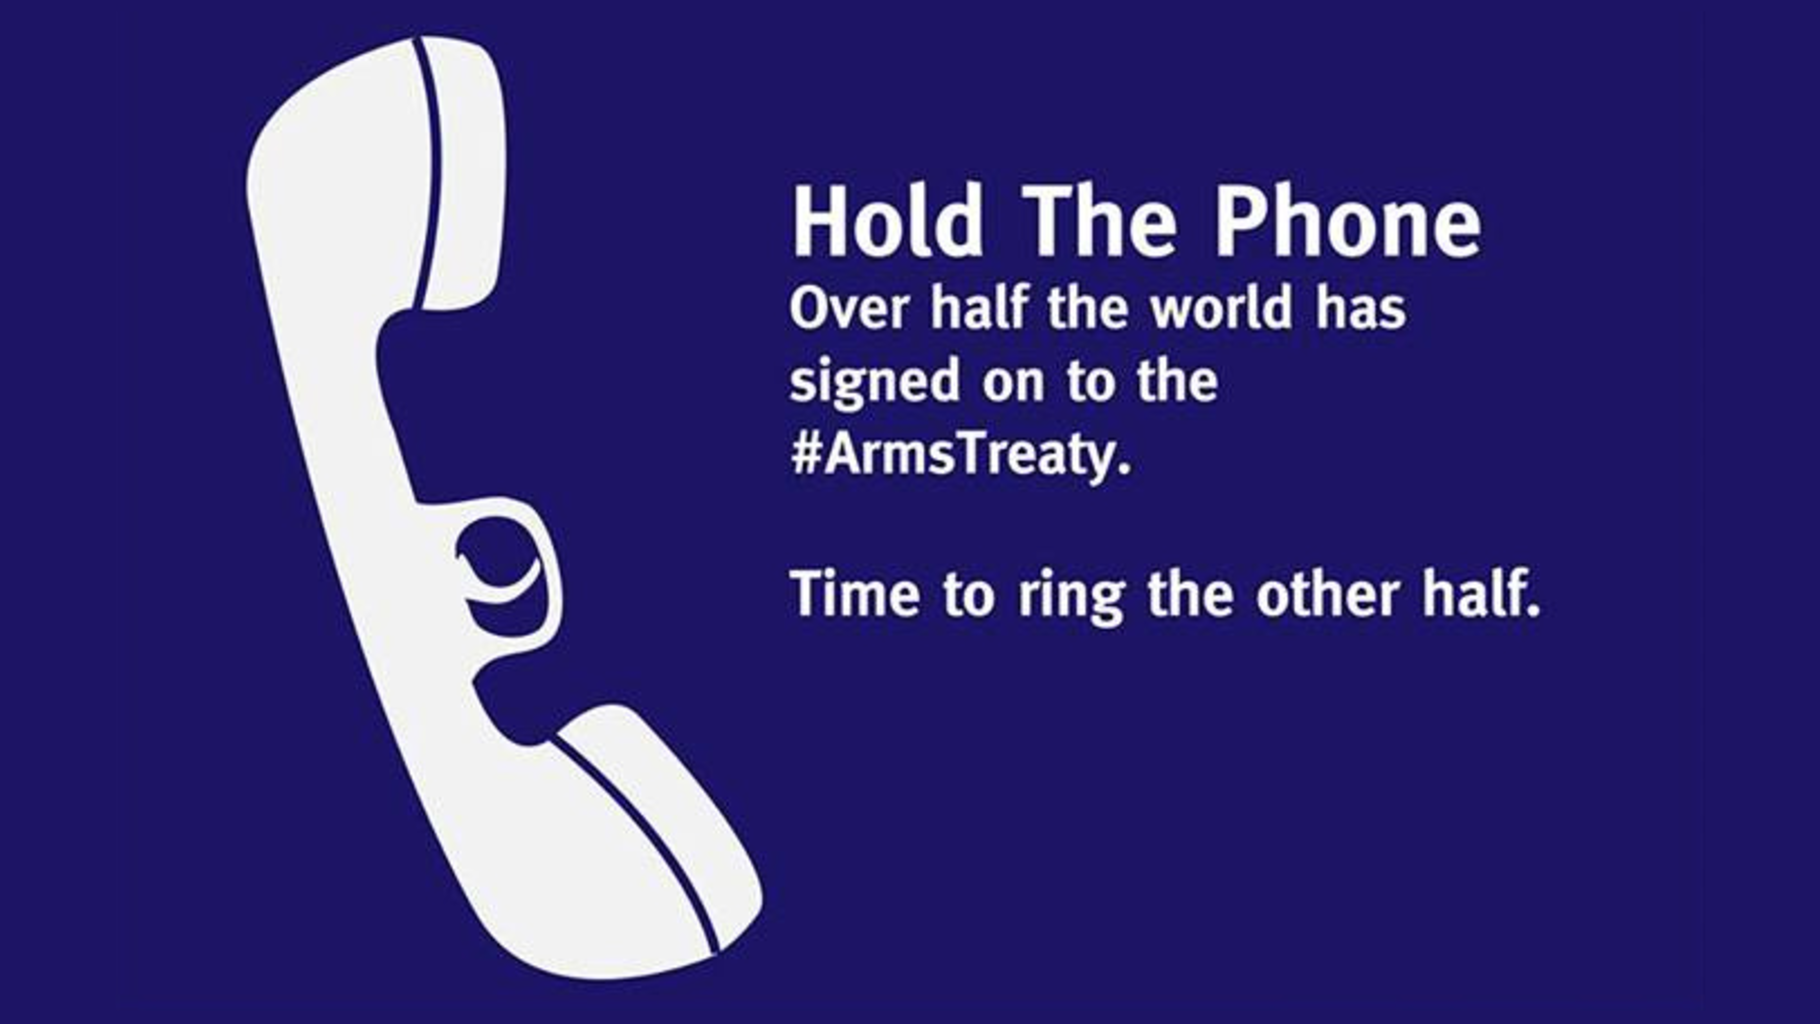 Over half the world has signed on to the arms treaty. Time to ring the other hal